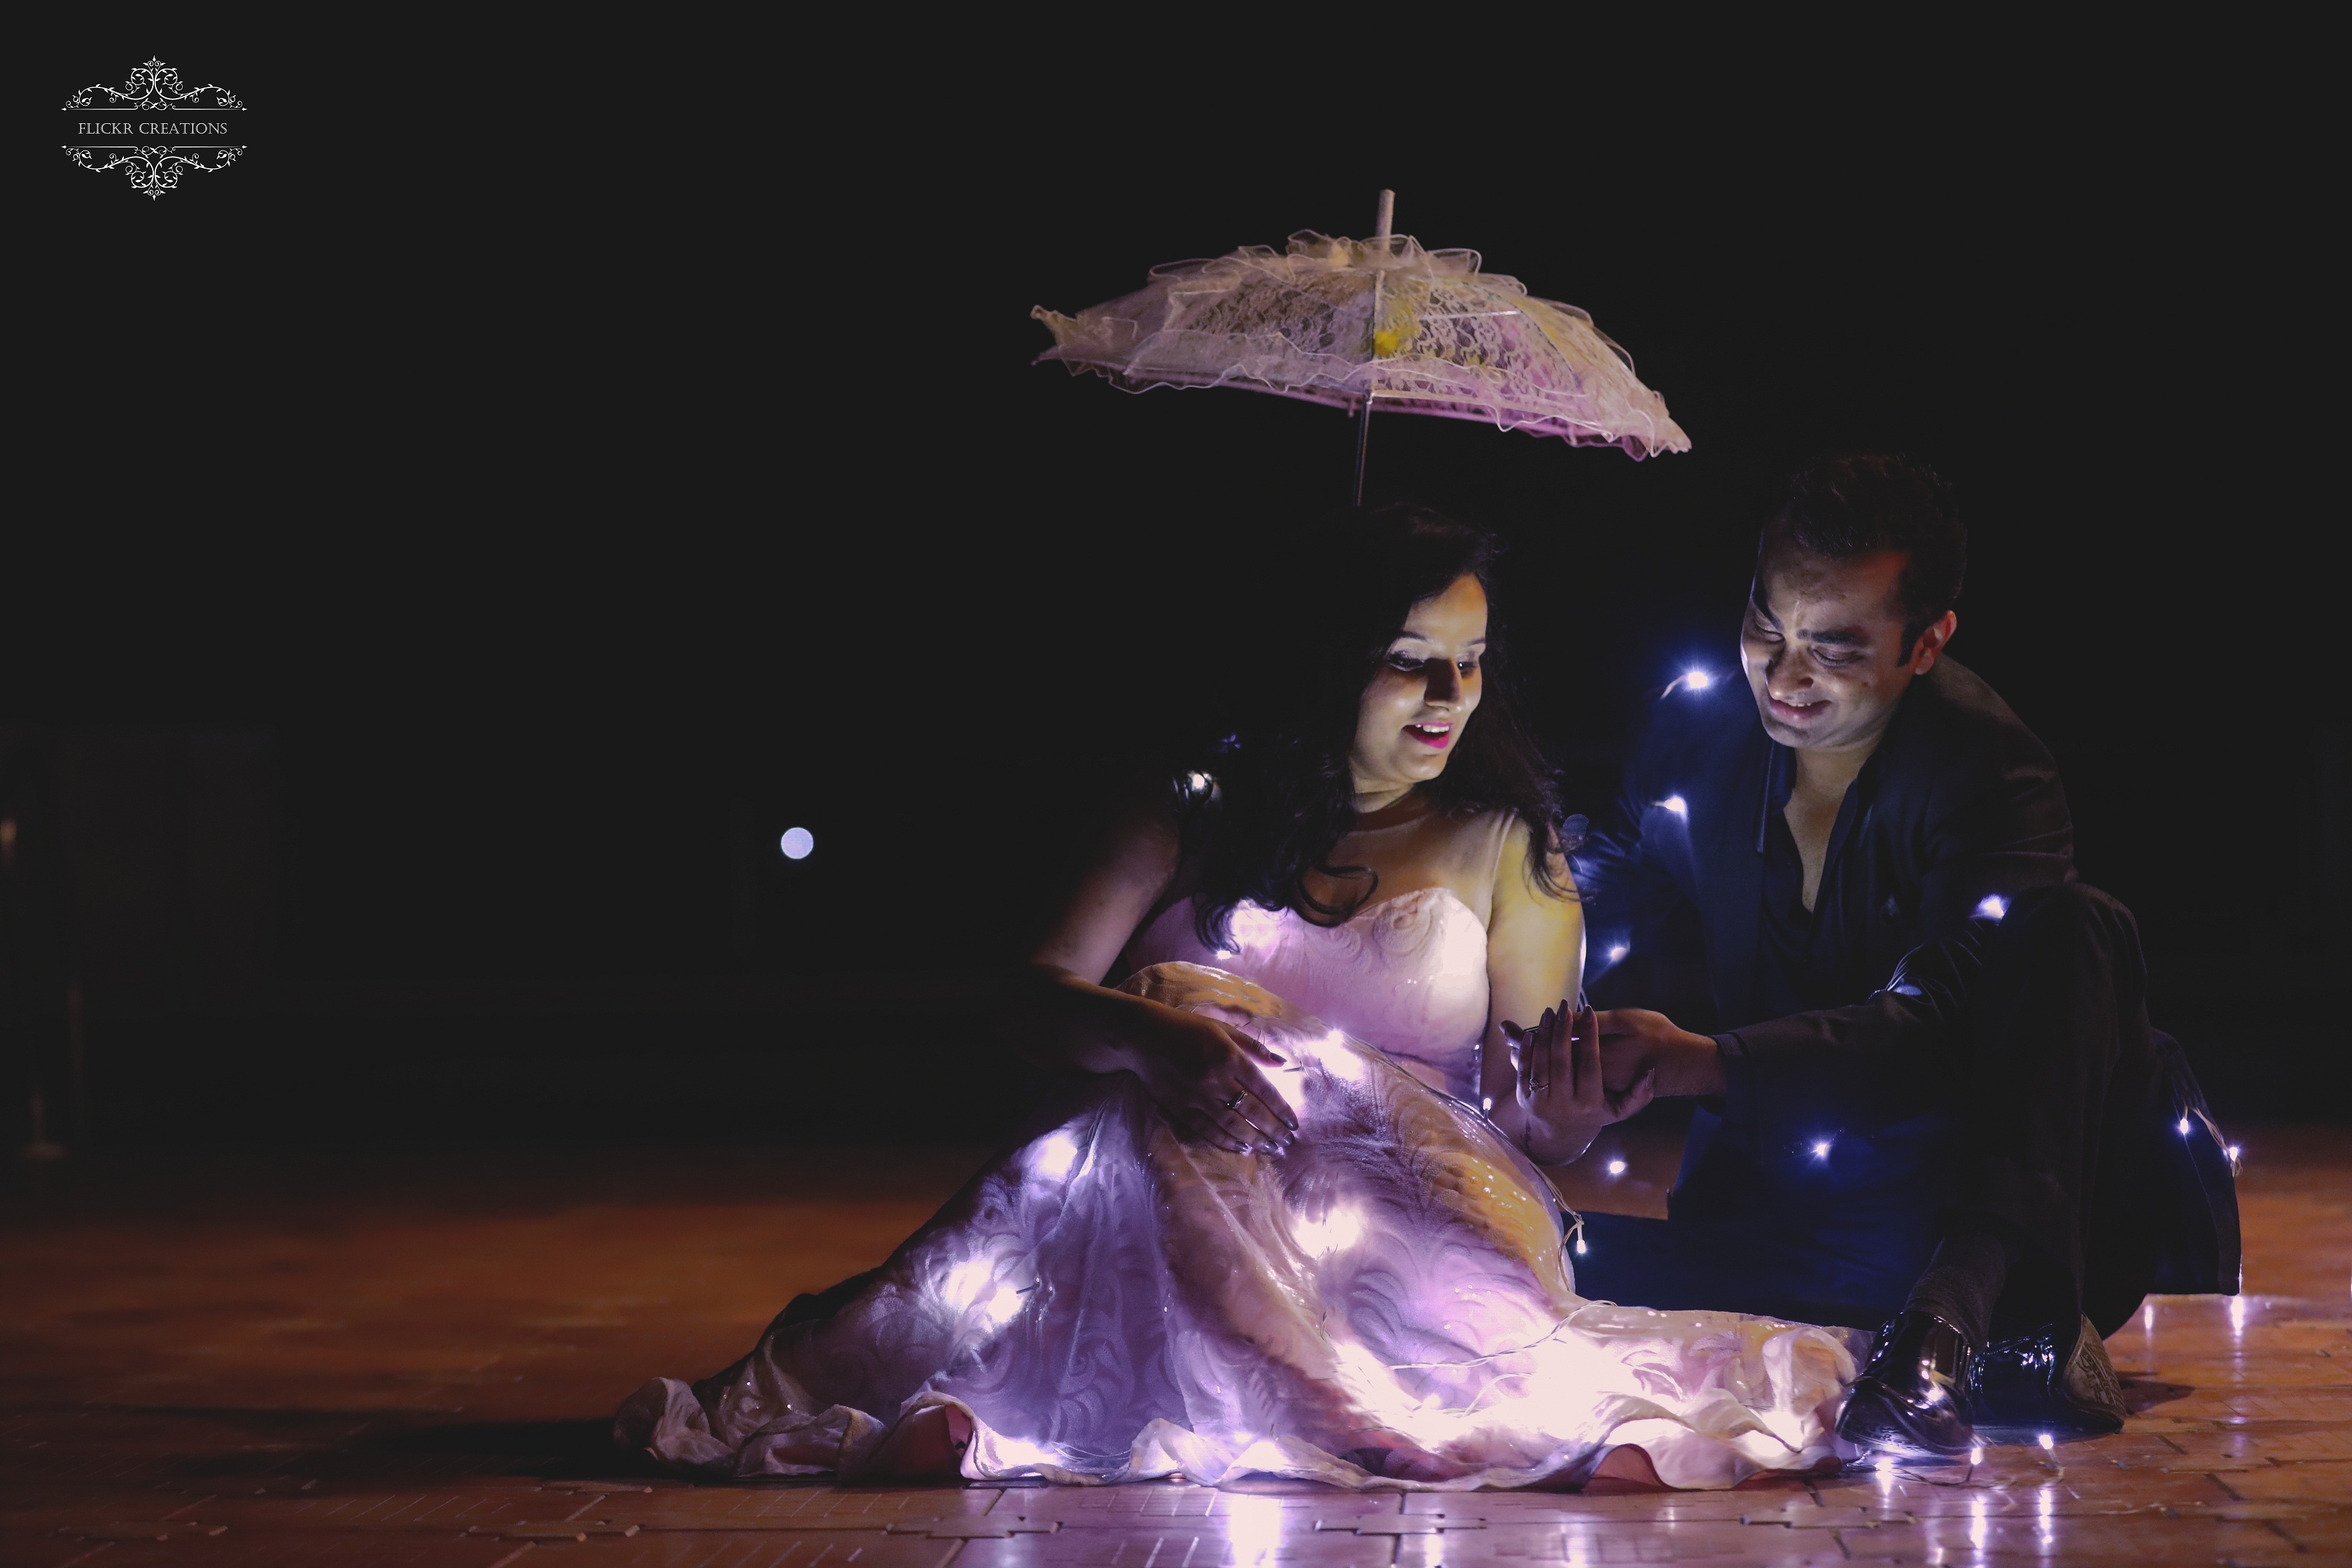 pre-wedding photoshoot with fairy lights